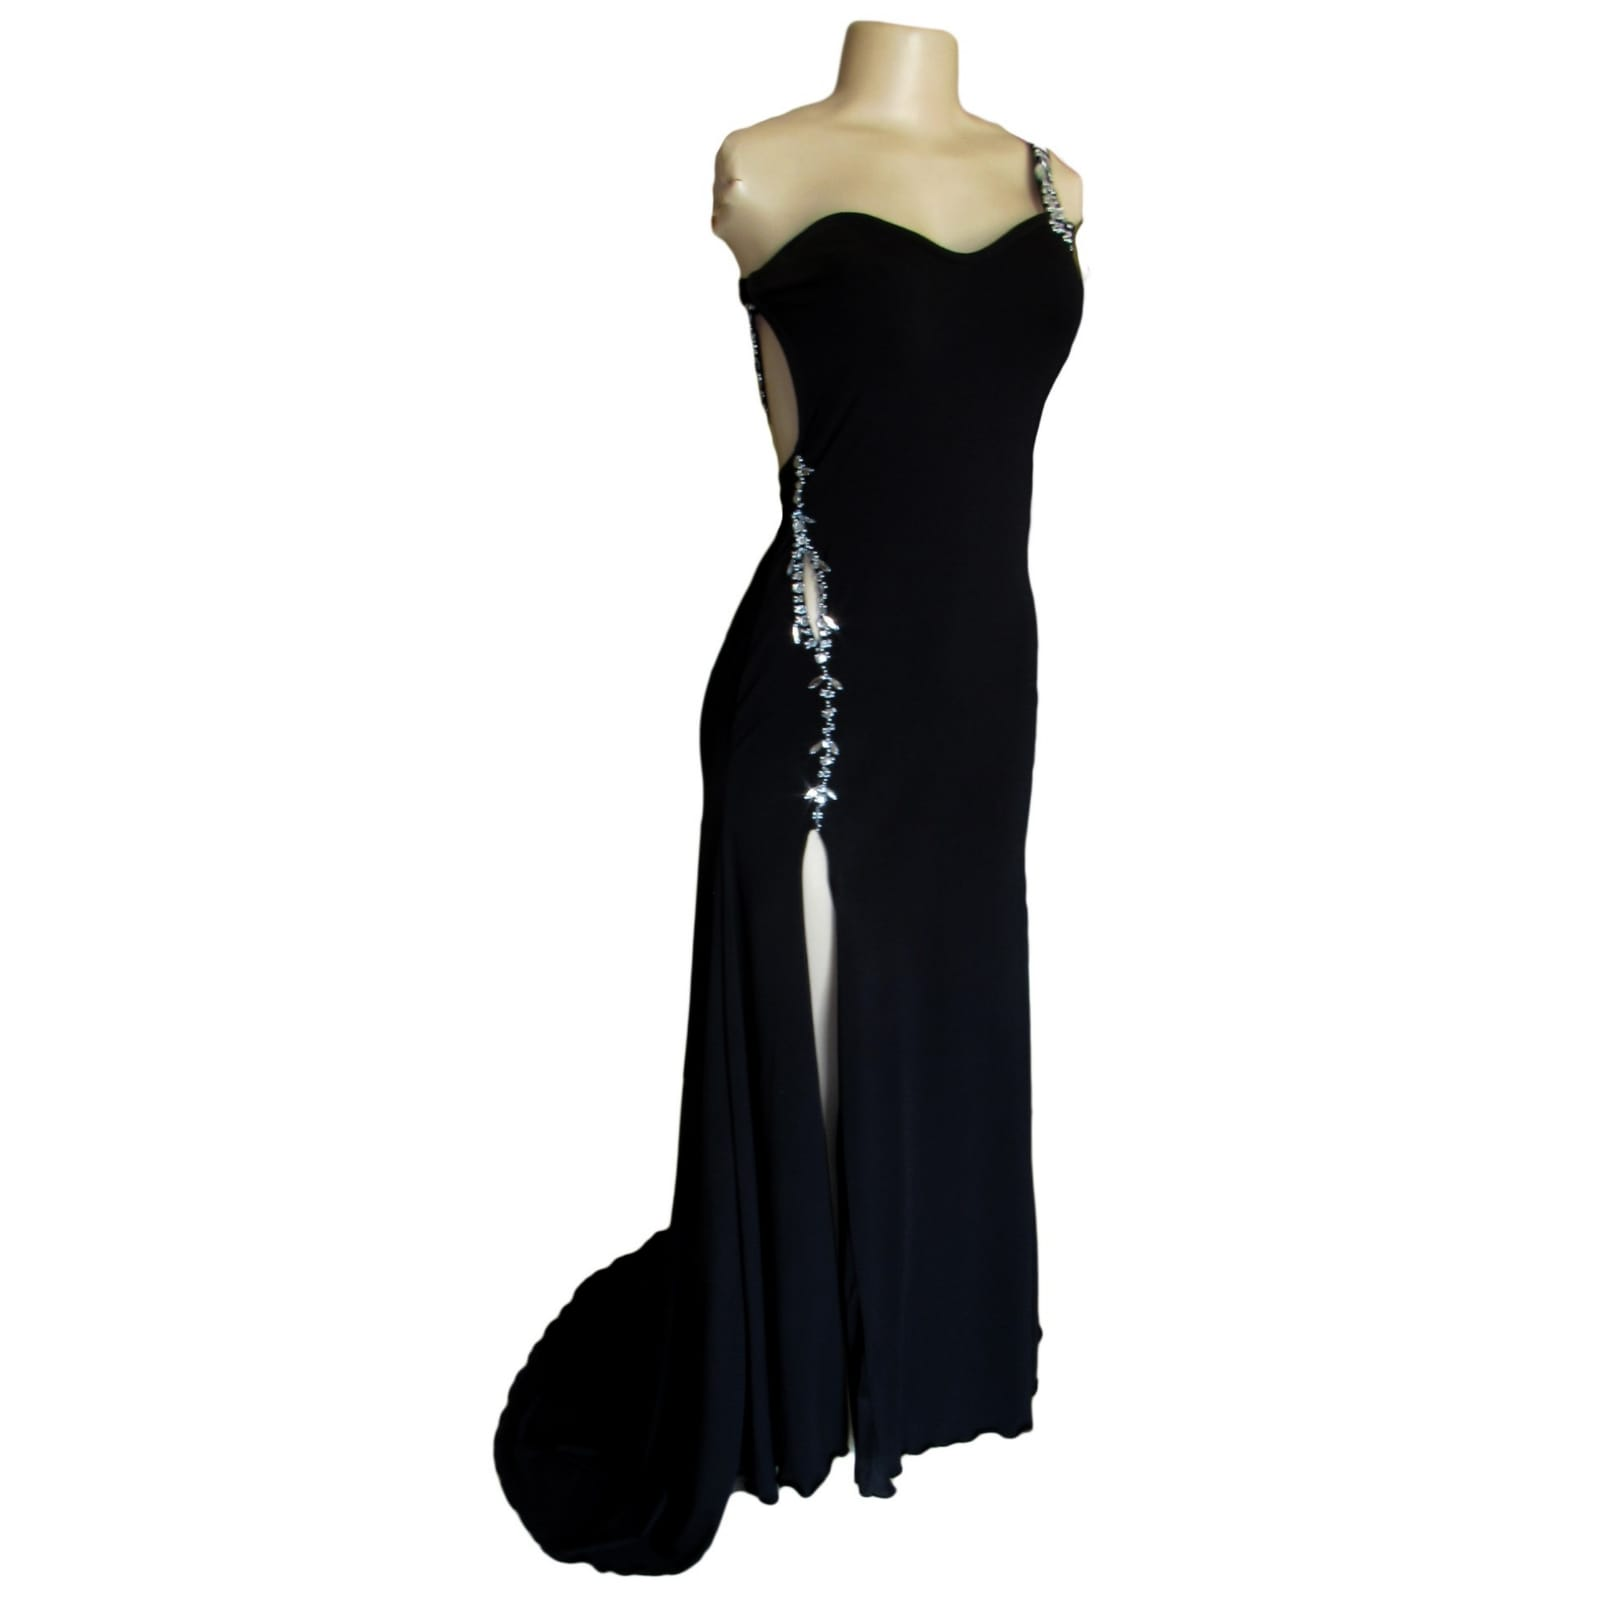 Black long formal dress with a low open back 1 black long formal dress with a low open back. Shoulder strap design detailed with silver beads and a slit.